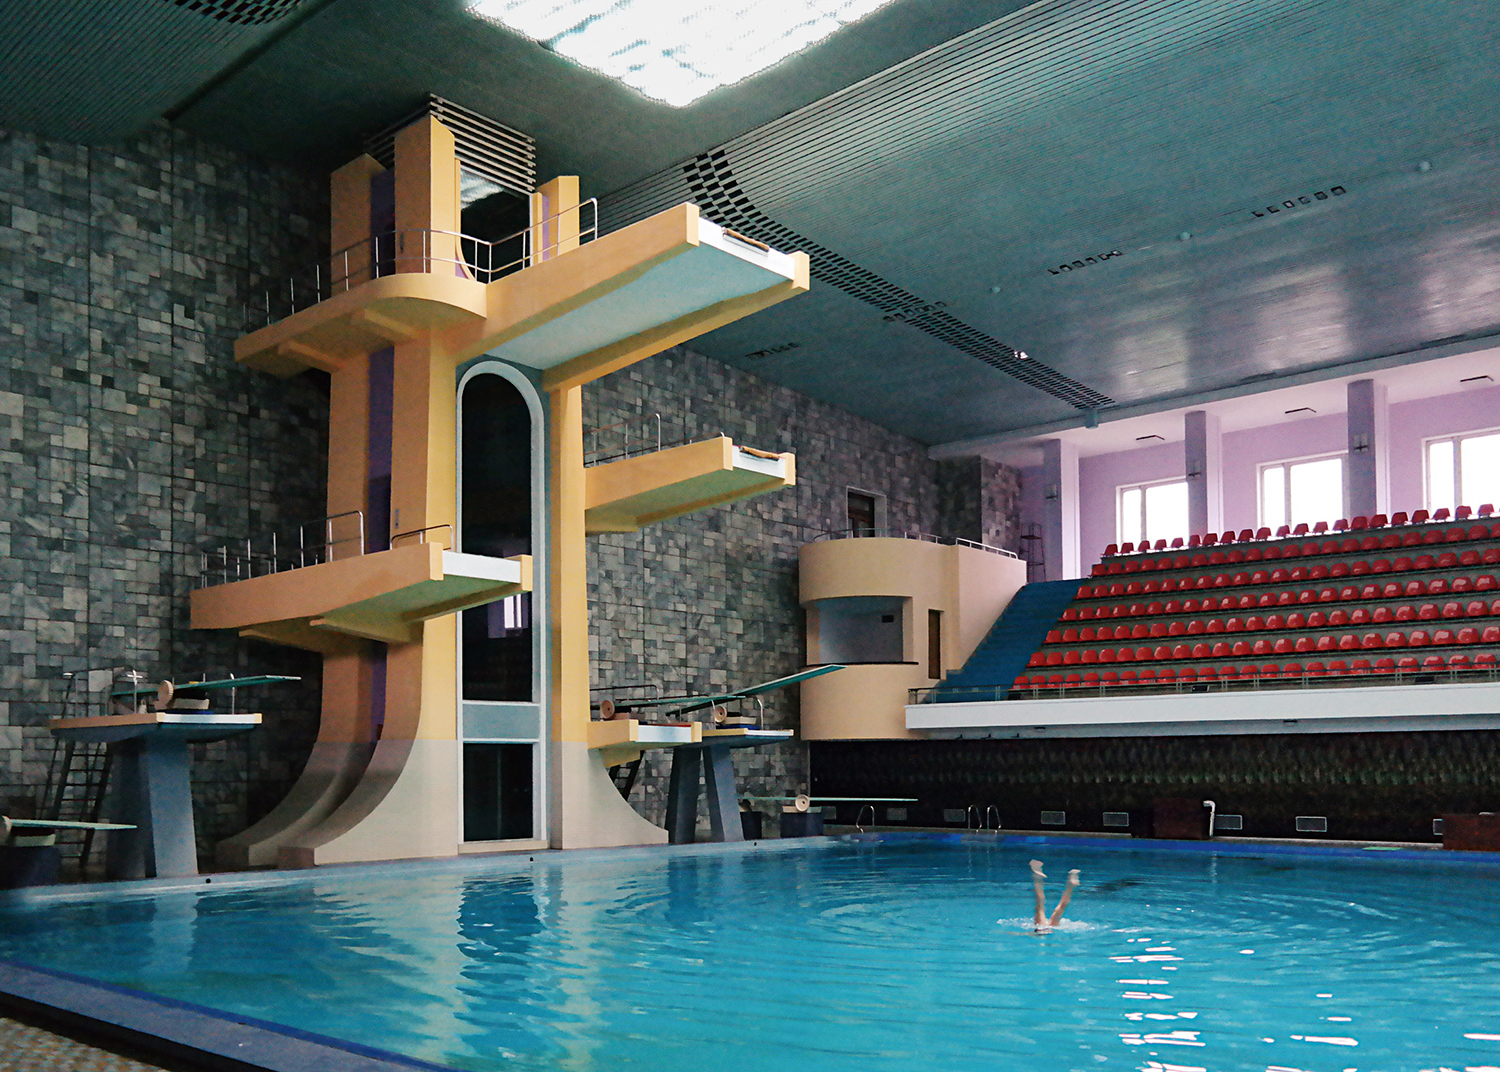 Changgwang Health and Recreation Complex, built in 1980